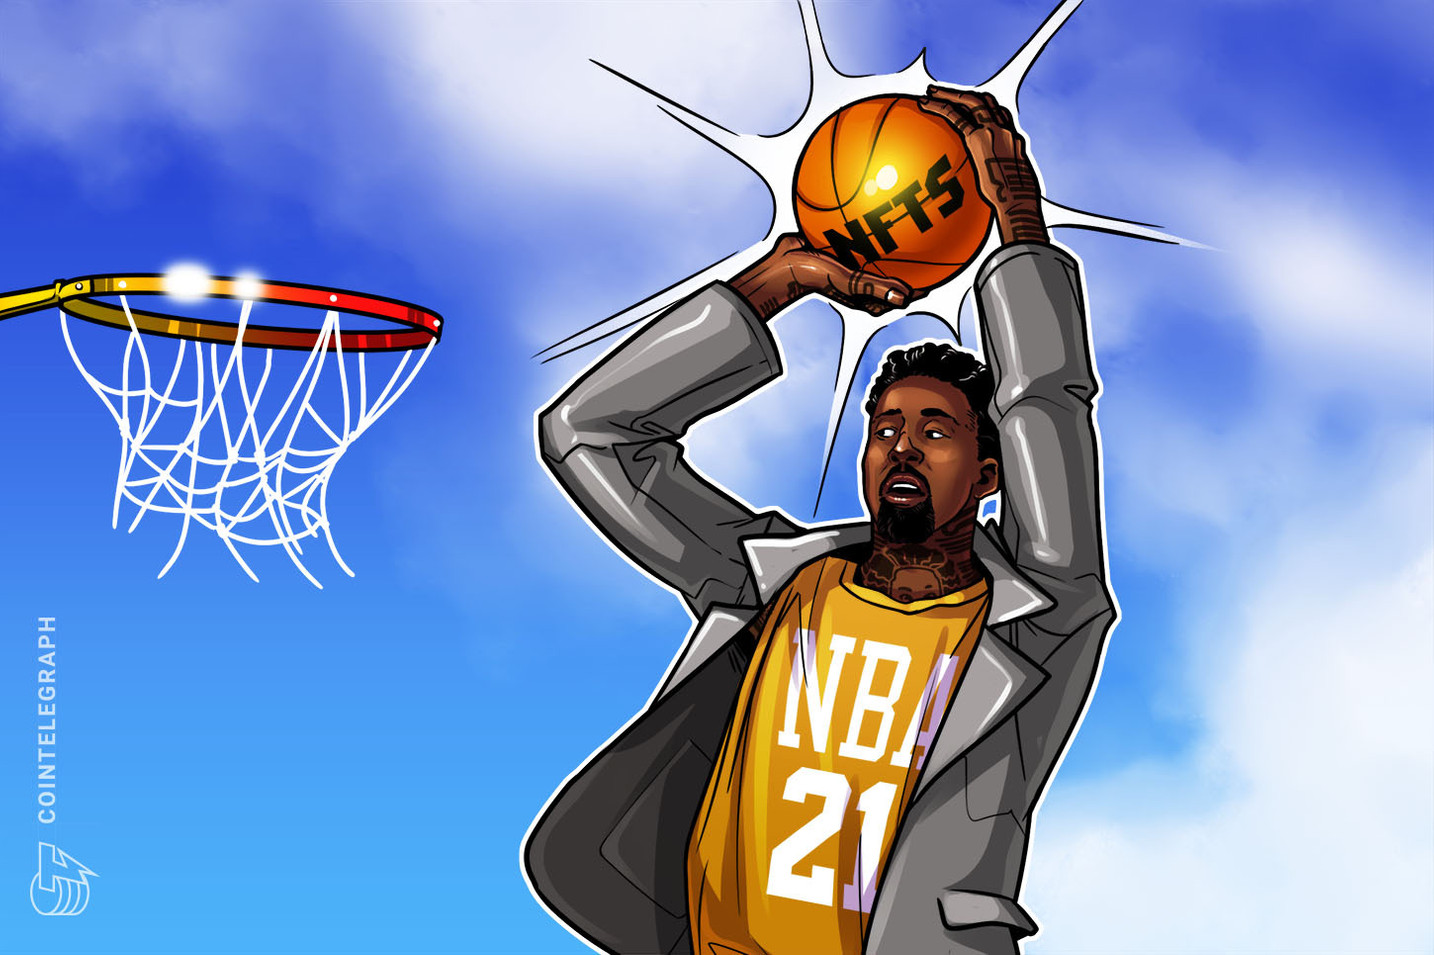 Basketball star turned digital racehorse tycoon: Wilson Chandler on NFTs and the NBA